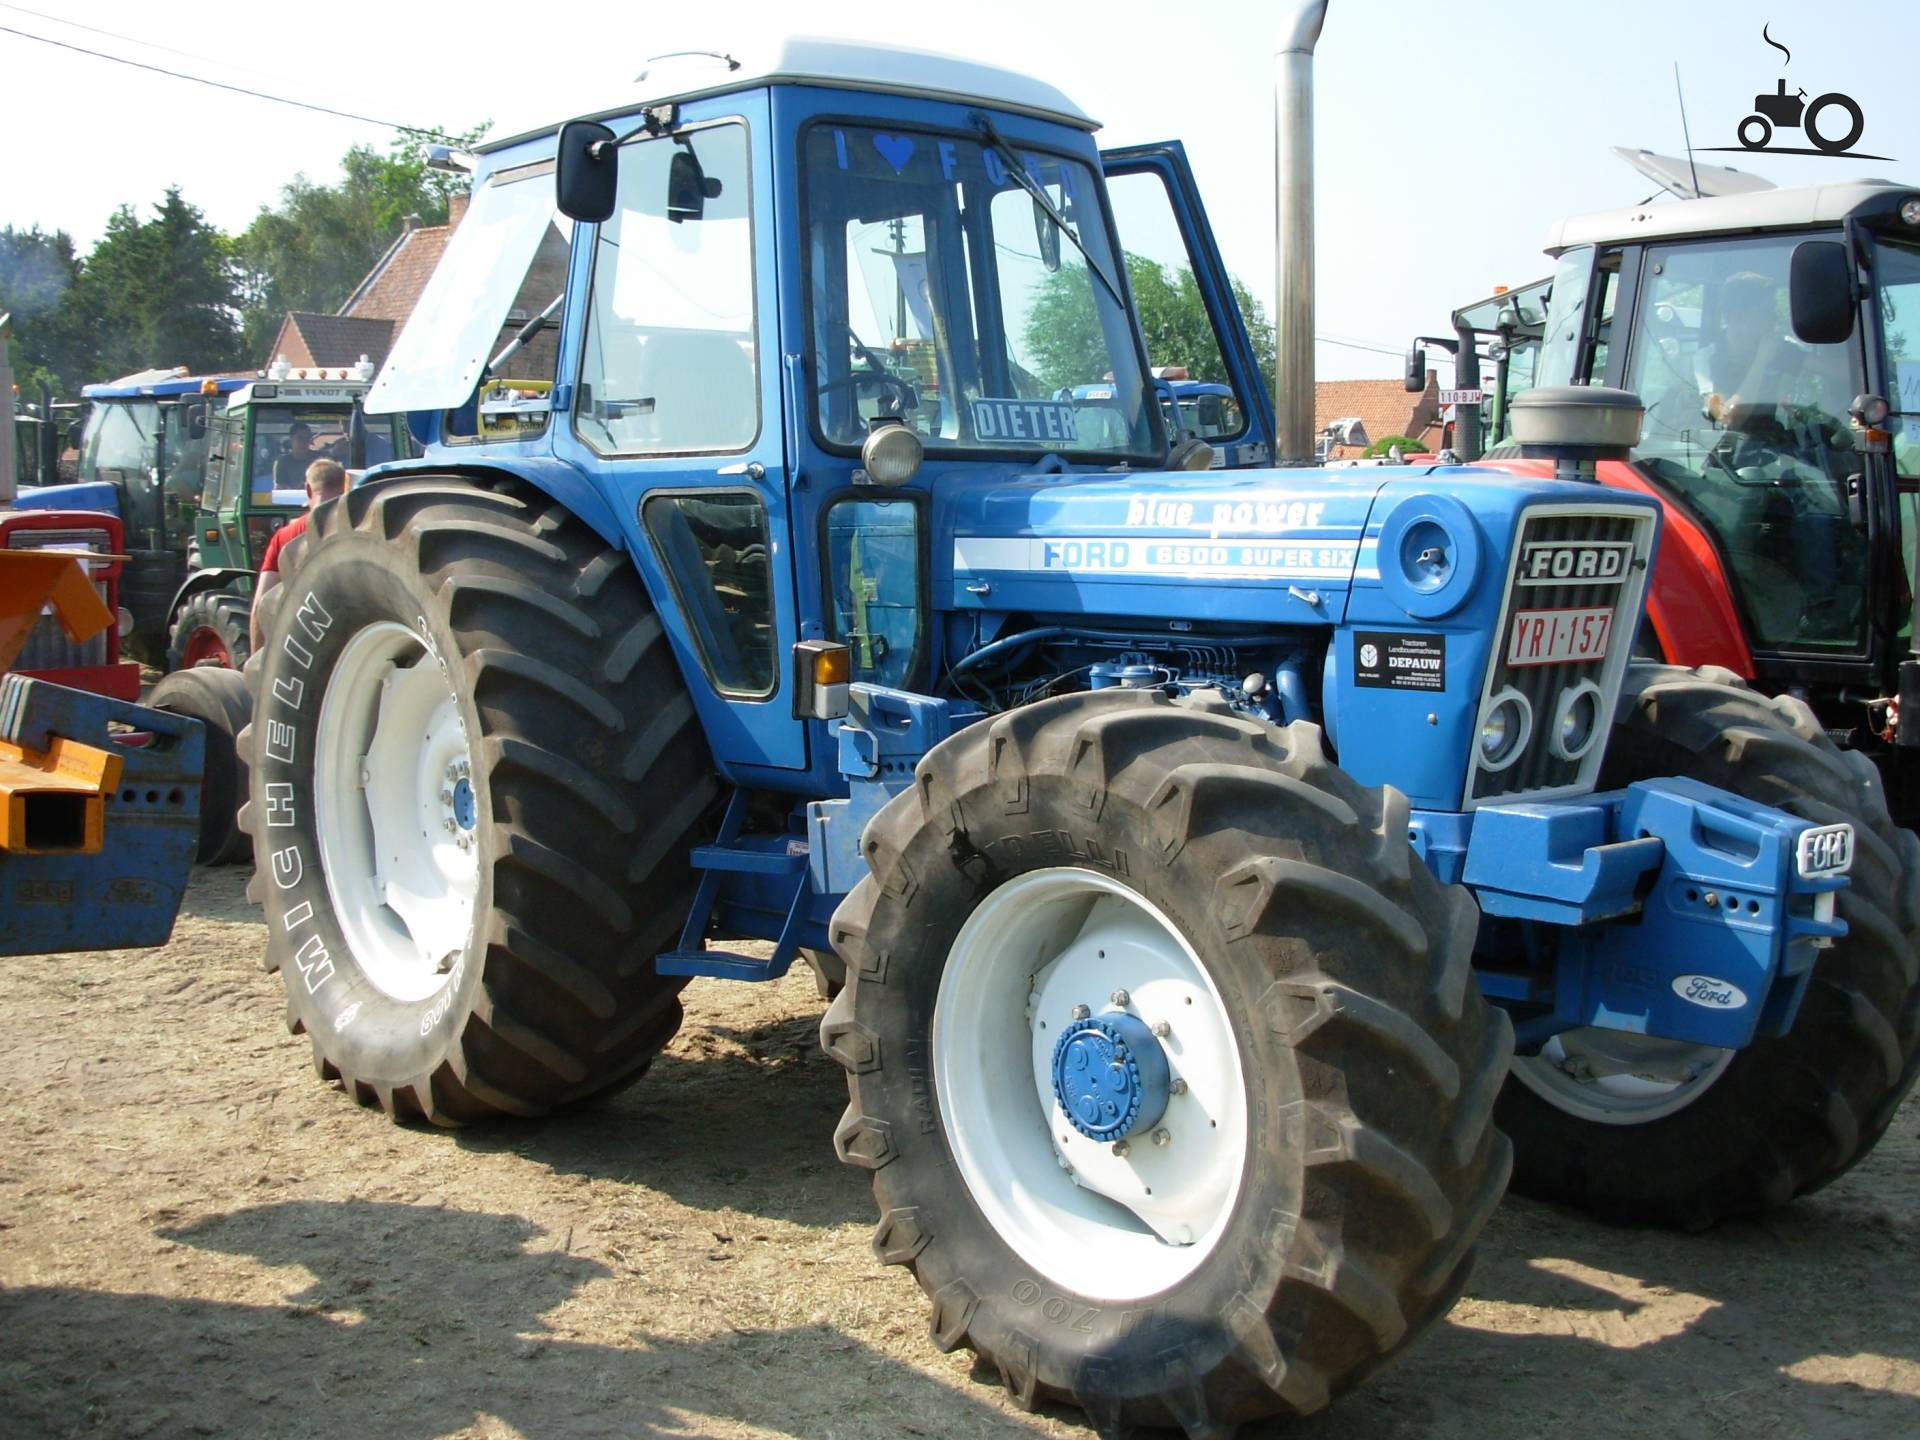 Ford Tractor Identification : Ford tractor model identification autos we